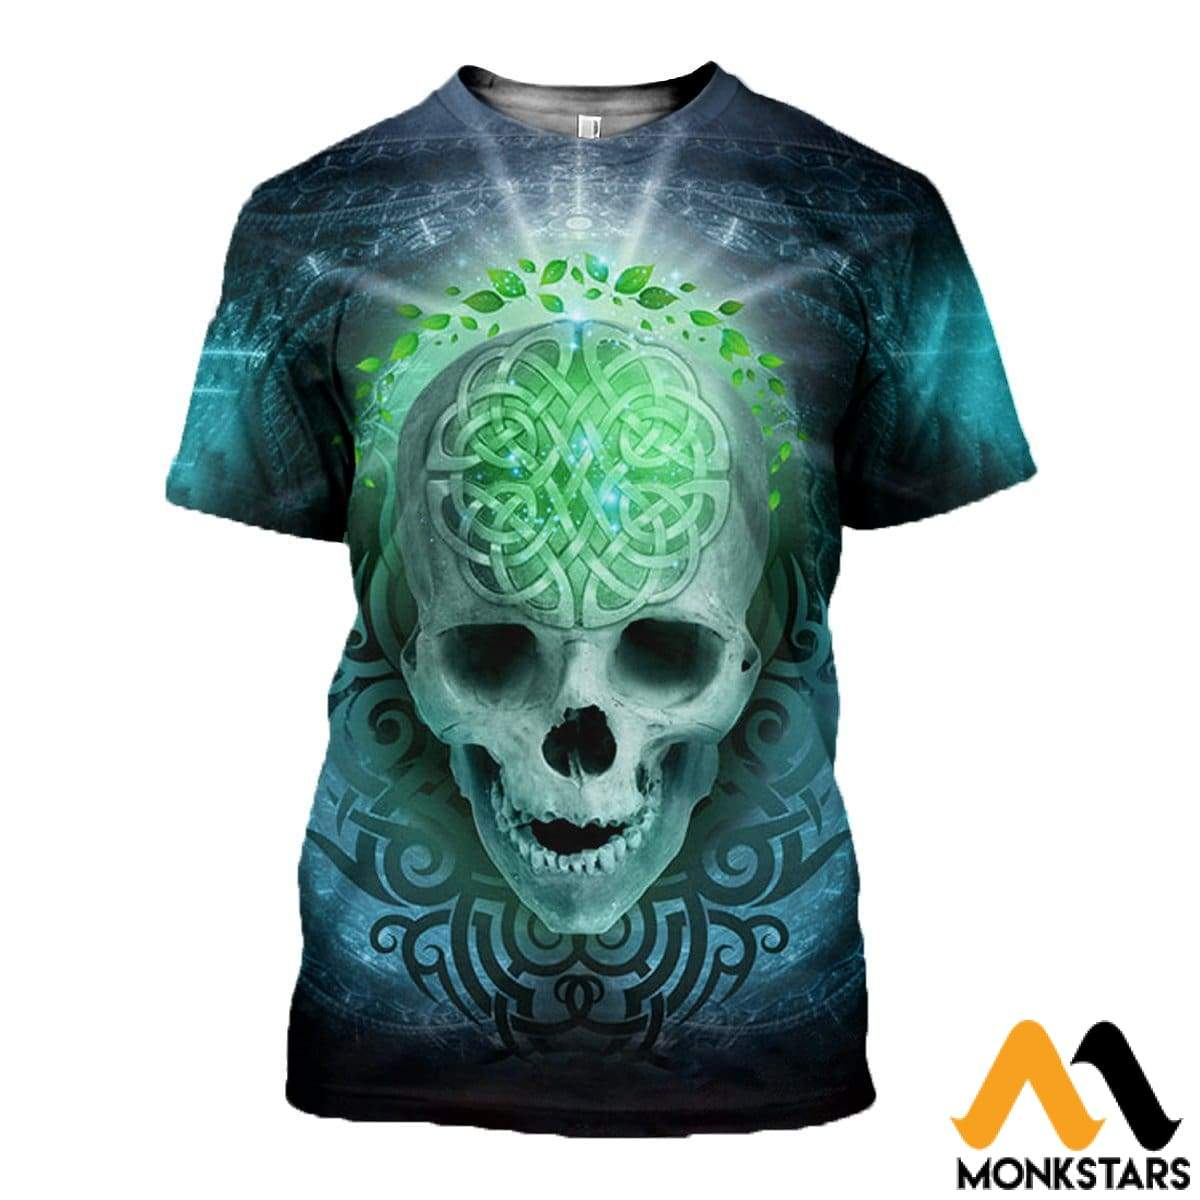 3D All Over Printed Blue Skull T-Shirt Hoodie Adum180404 / Xs Clothes